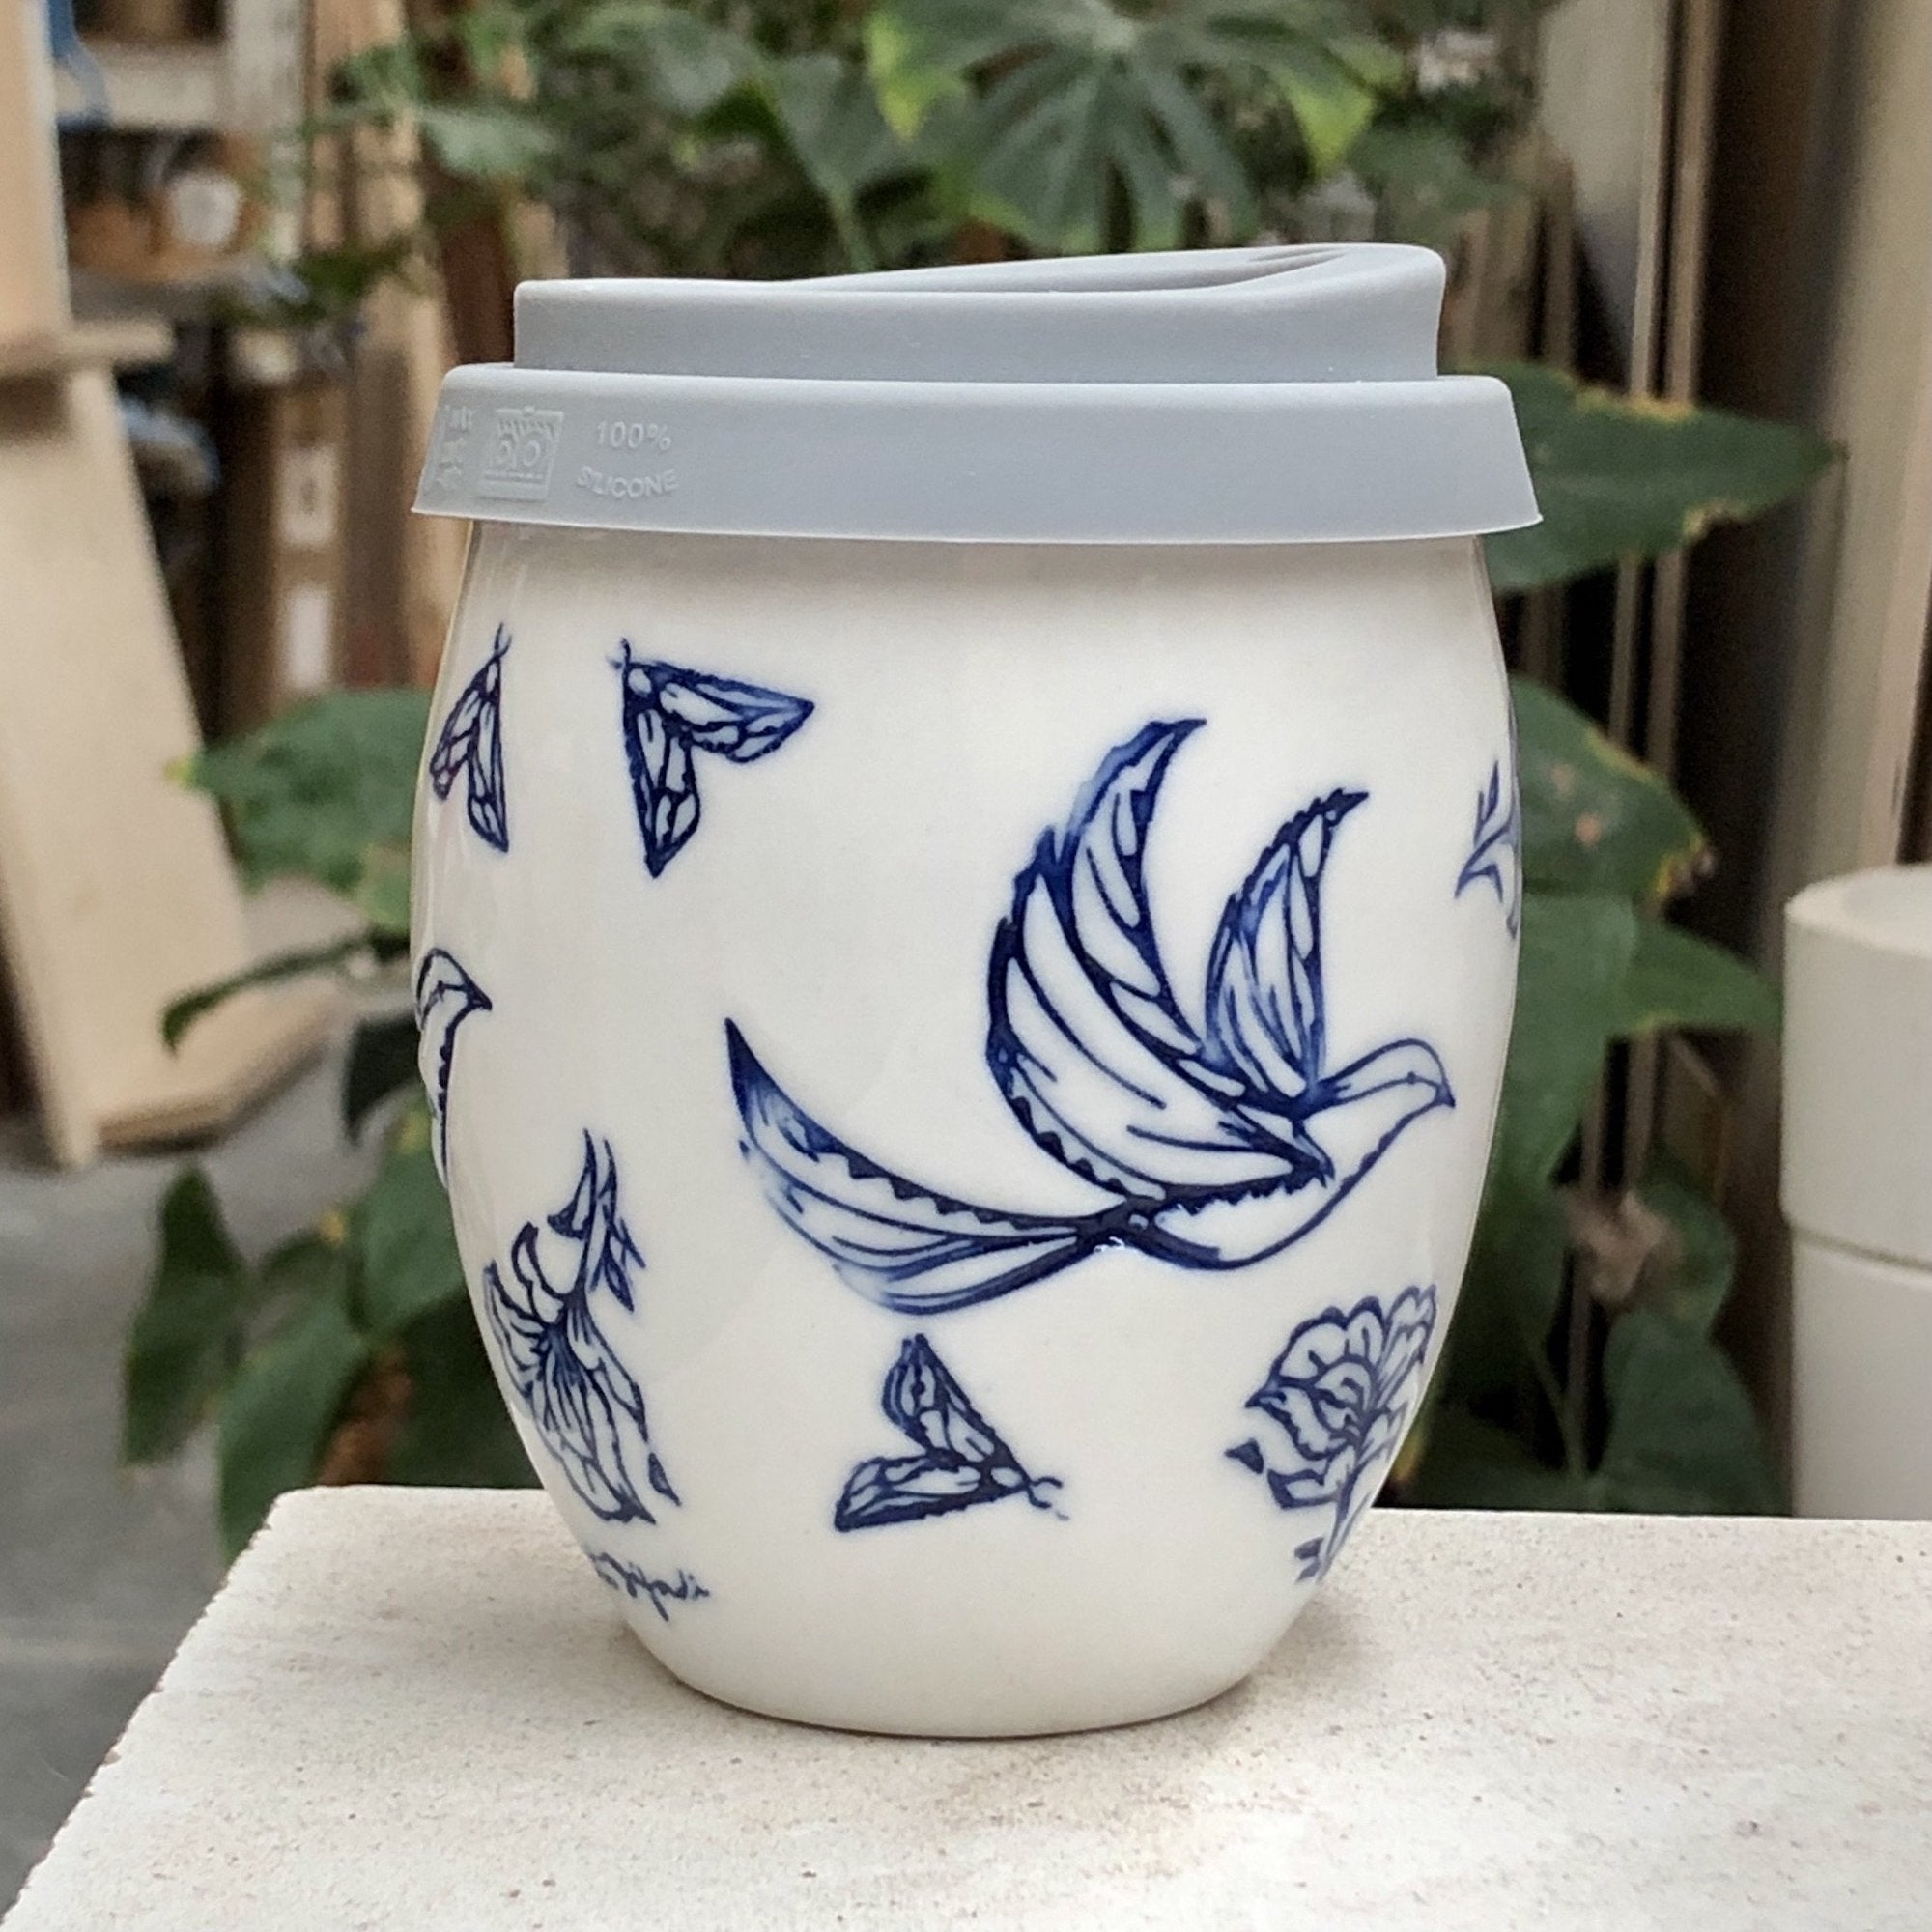 A beautiful white ceramic hand made keep cup. Stamped with a spring time inspired drawing, that is filled with birds flowers and moths. The cup is stamped in blue with a clear glaze. A design collaboration between Hayden Youlley and Renata Sàfadi